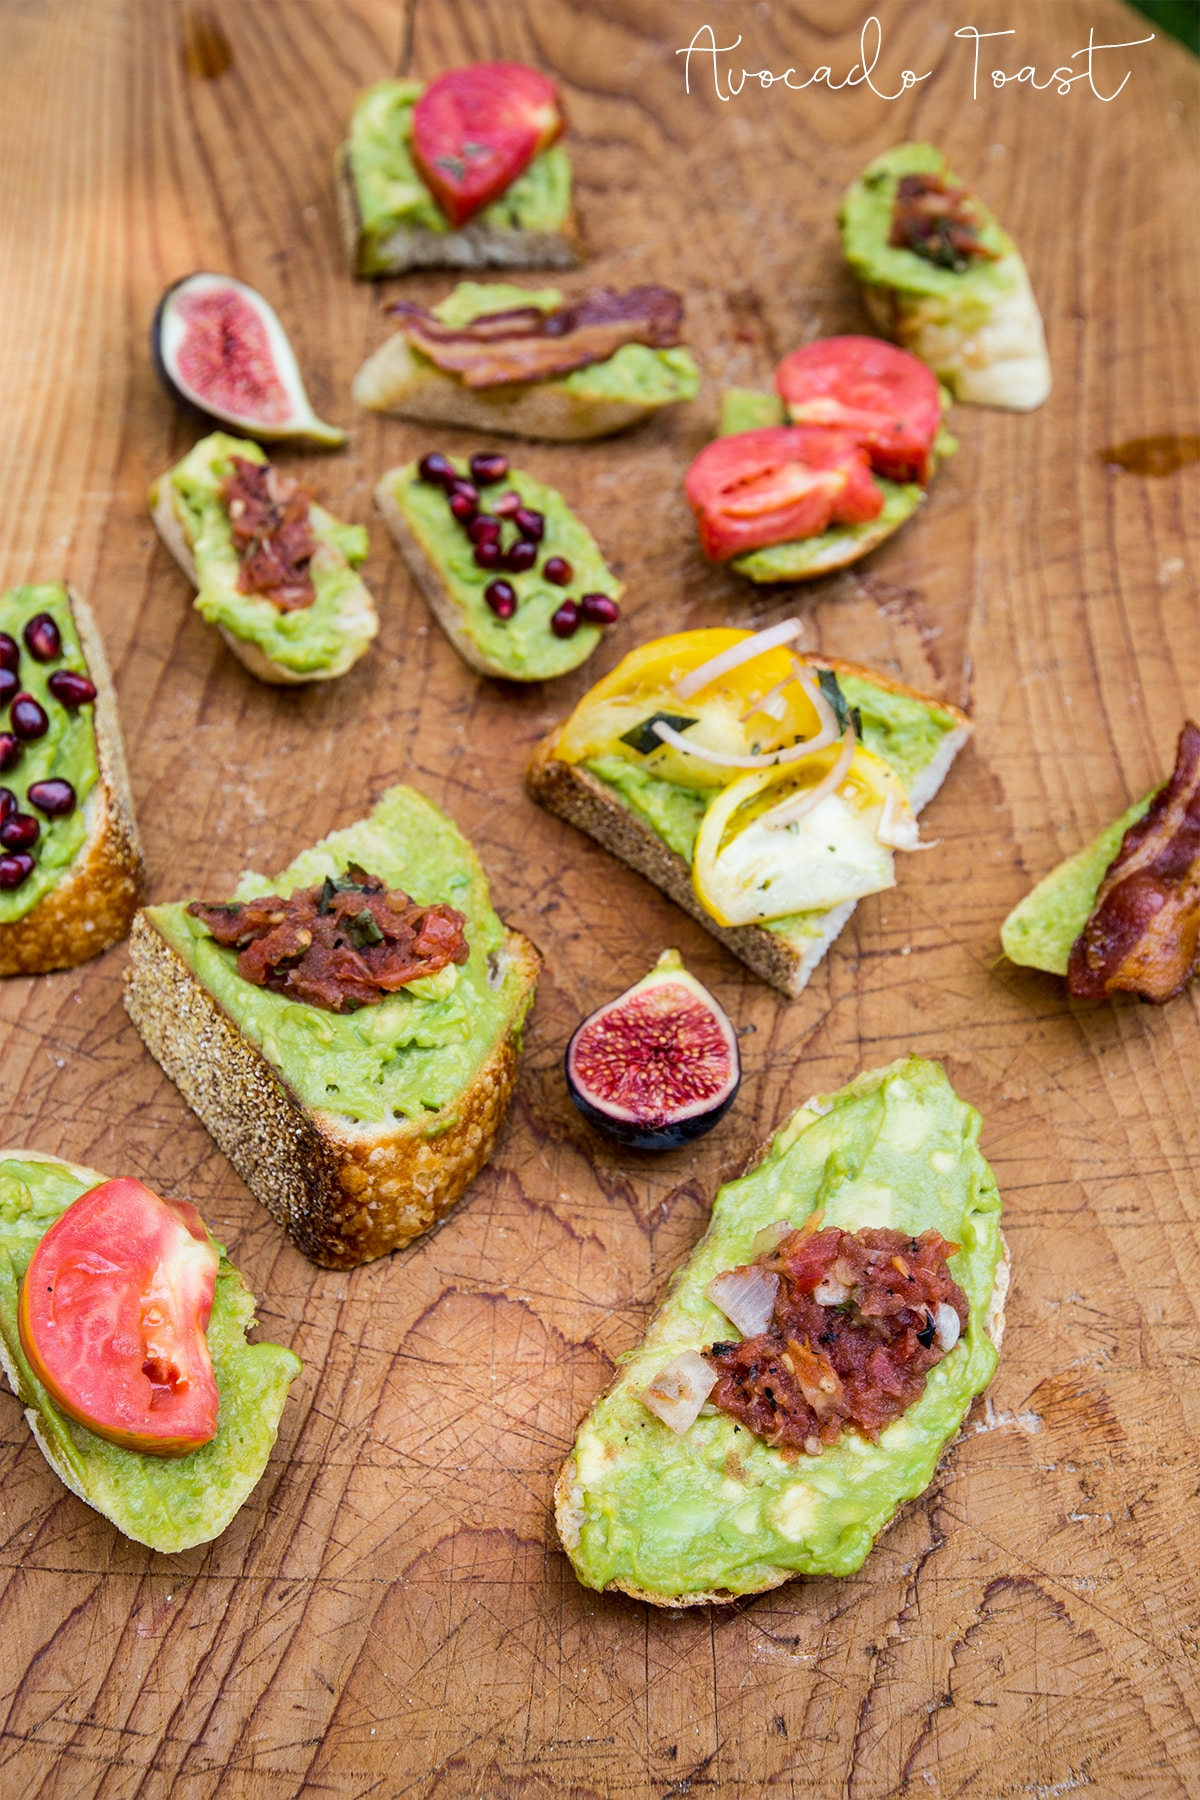 Avocado Toast- these variations look so delicious!